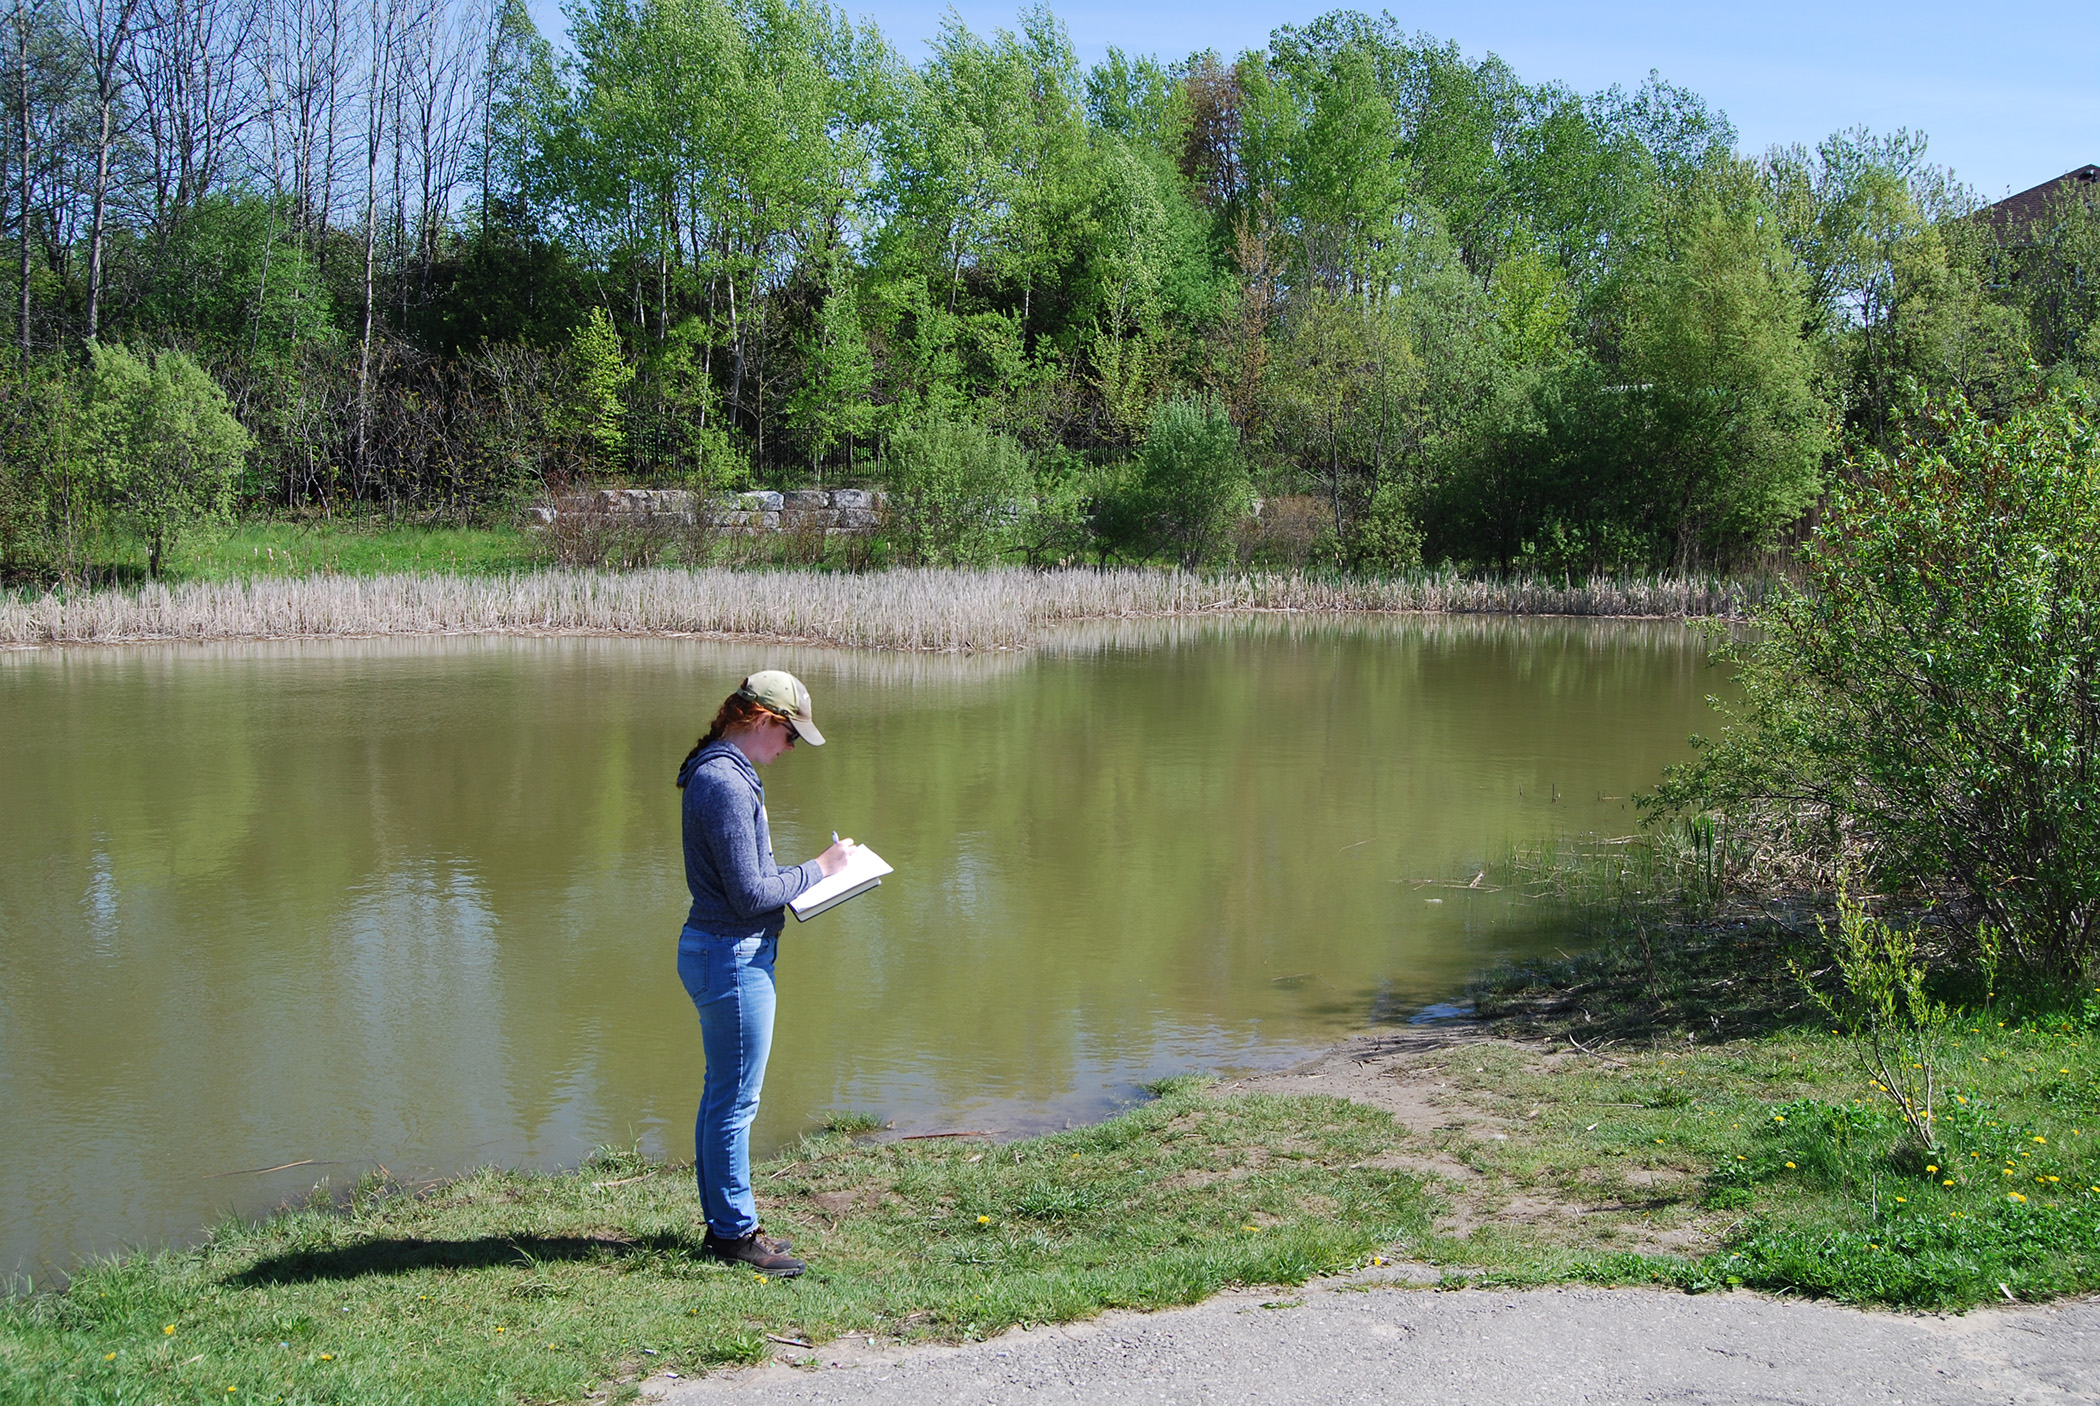 Master's student Alex conducts field research in an Oshawa stormwater management pond.